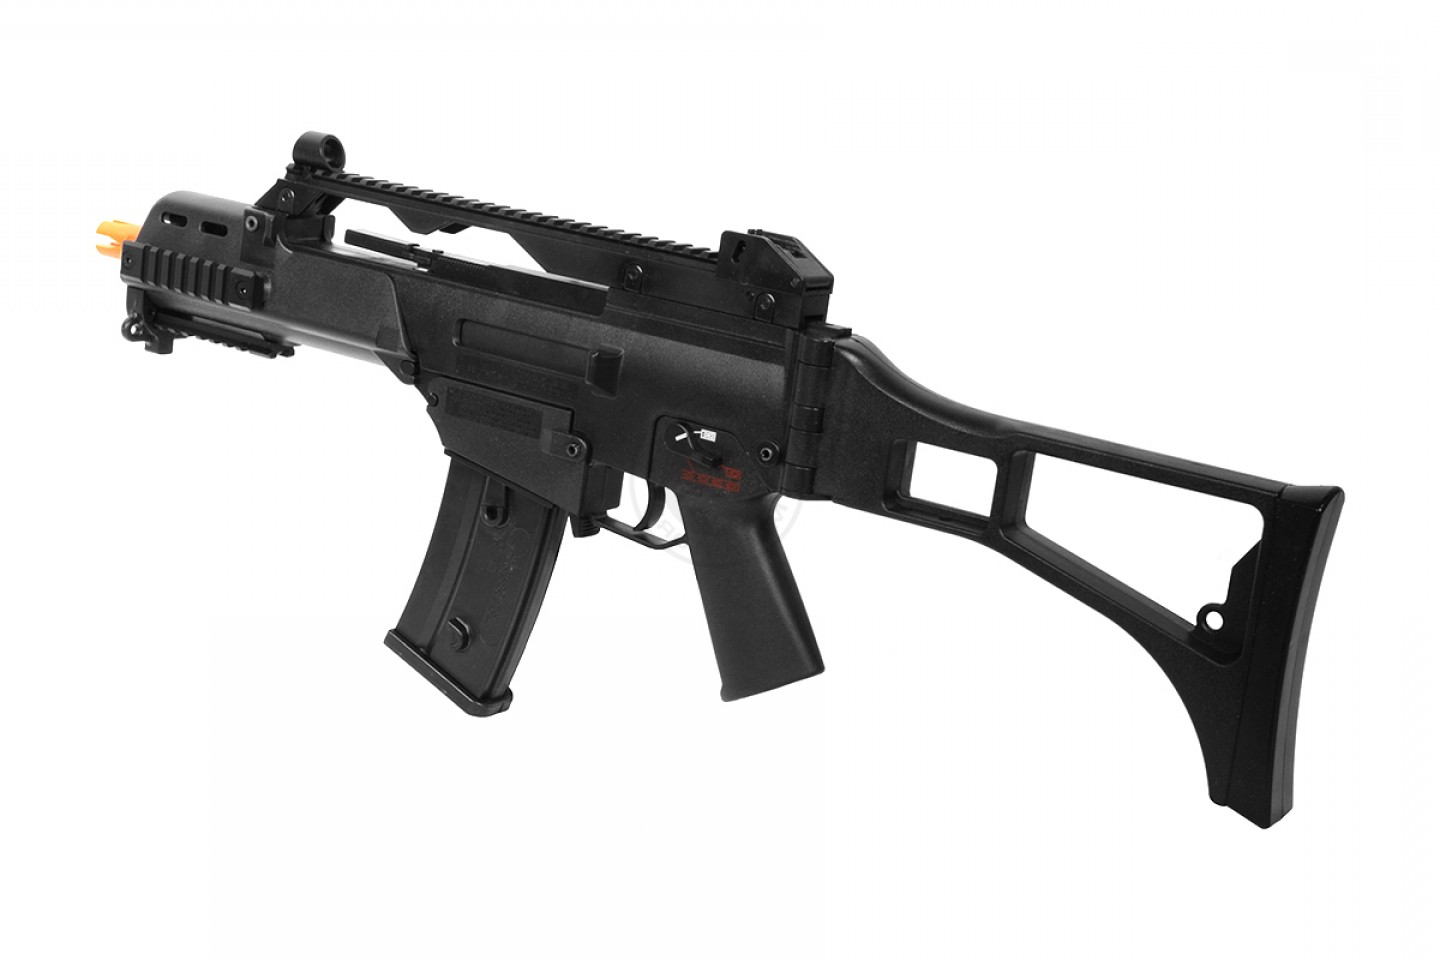 Ghosts Vector CQB: Handk Licensed Sandt Gc Airsoft Metal Gearbox Aeg Cqb Carbine Black